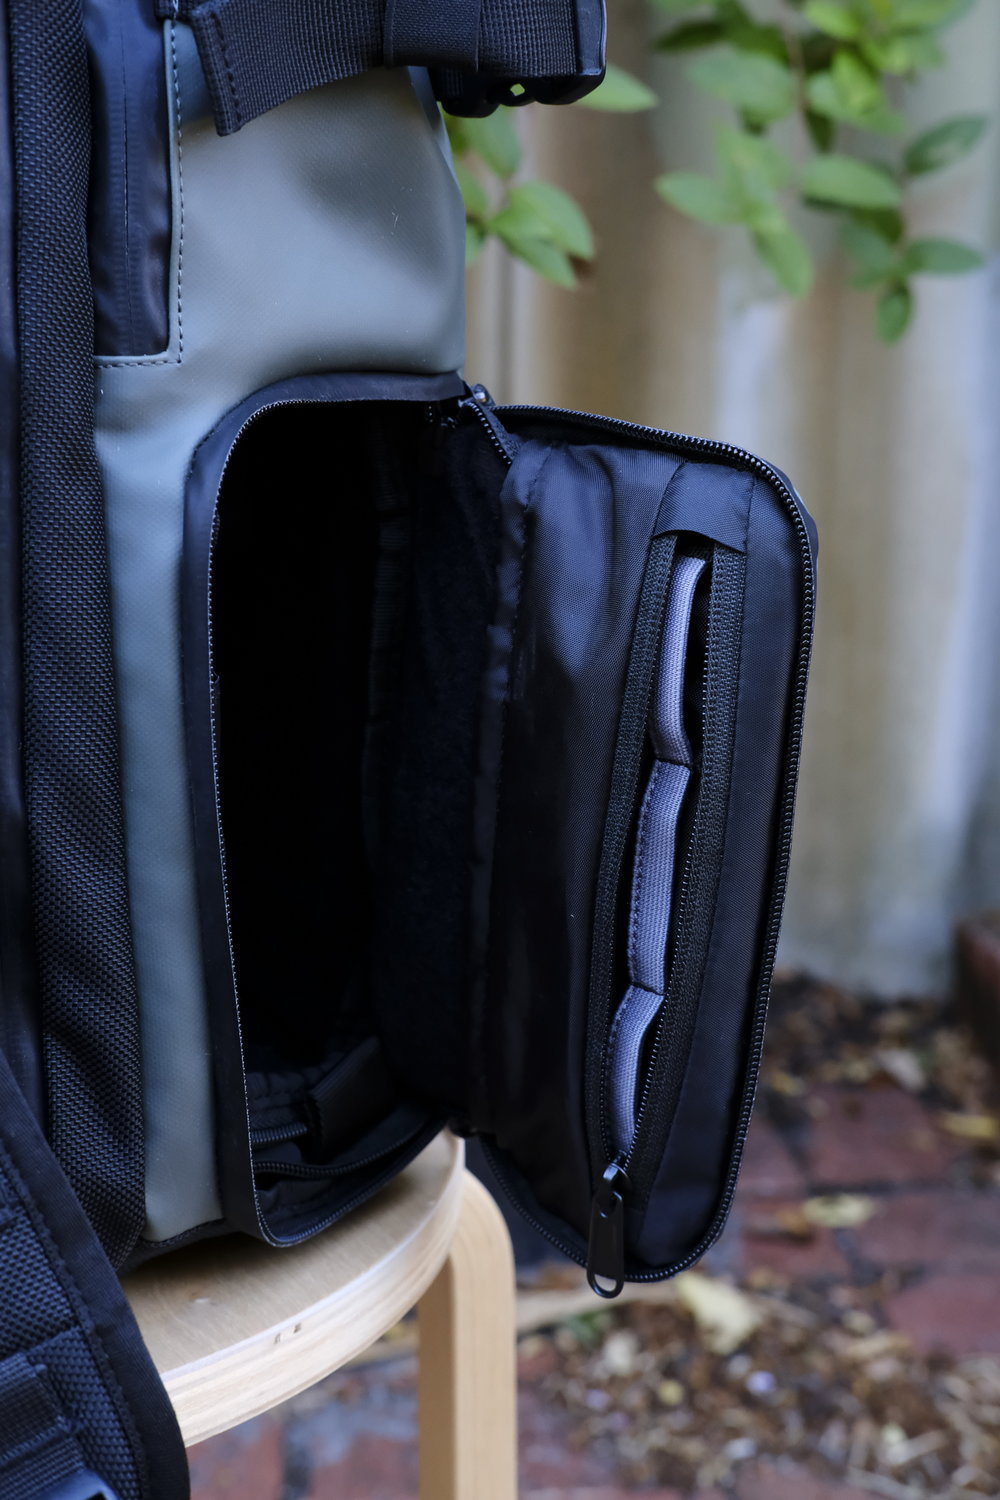 The zip compartment on the side pocket with space for 3 batteries.